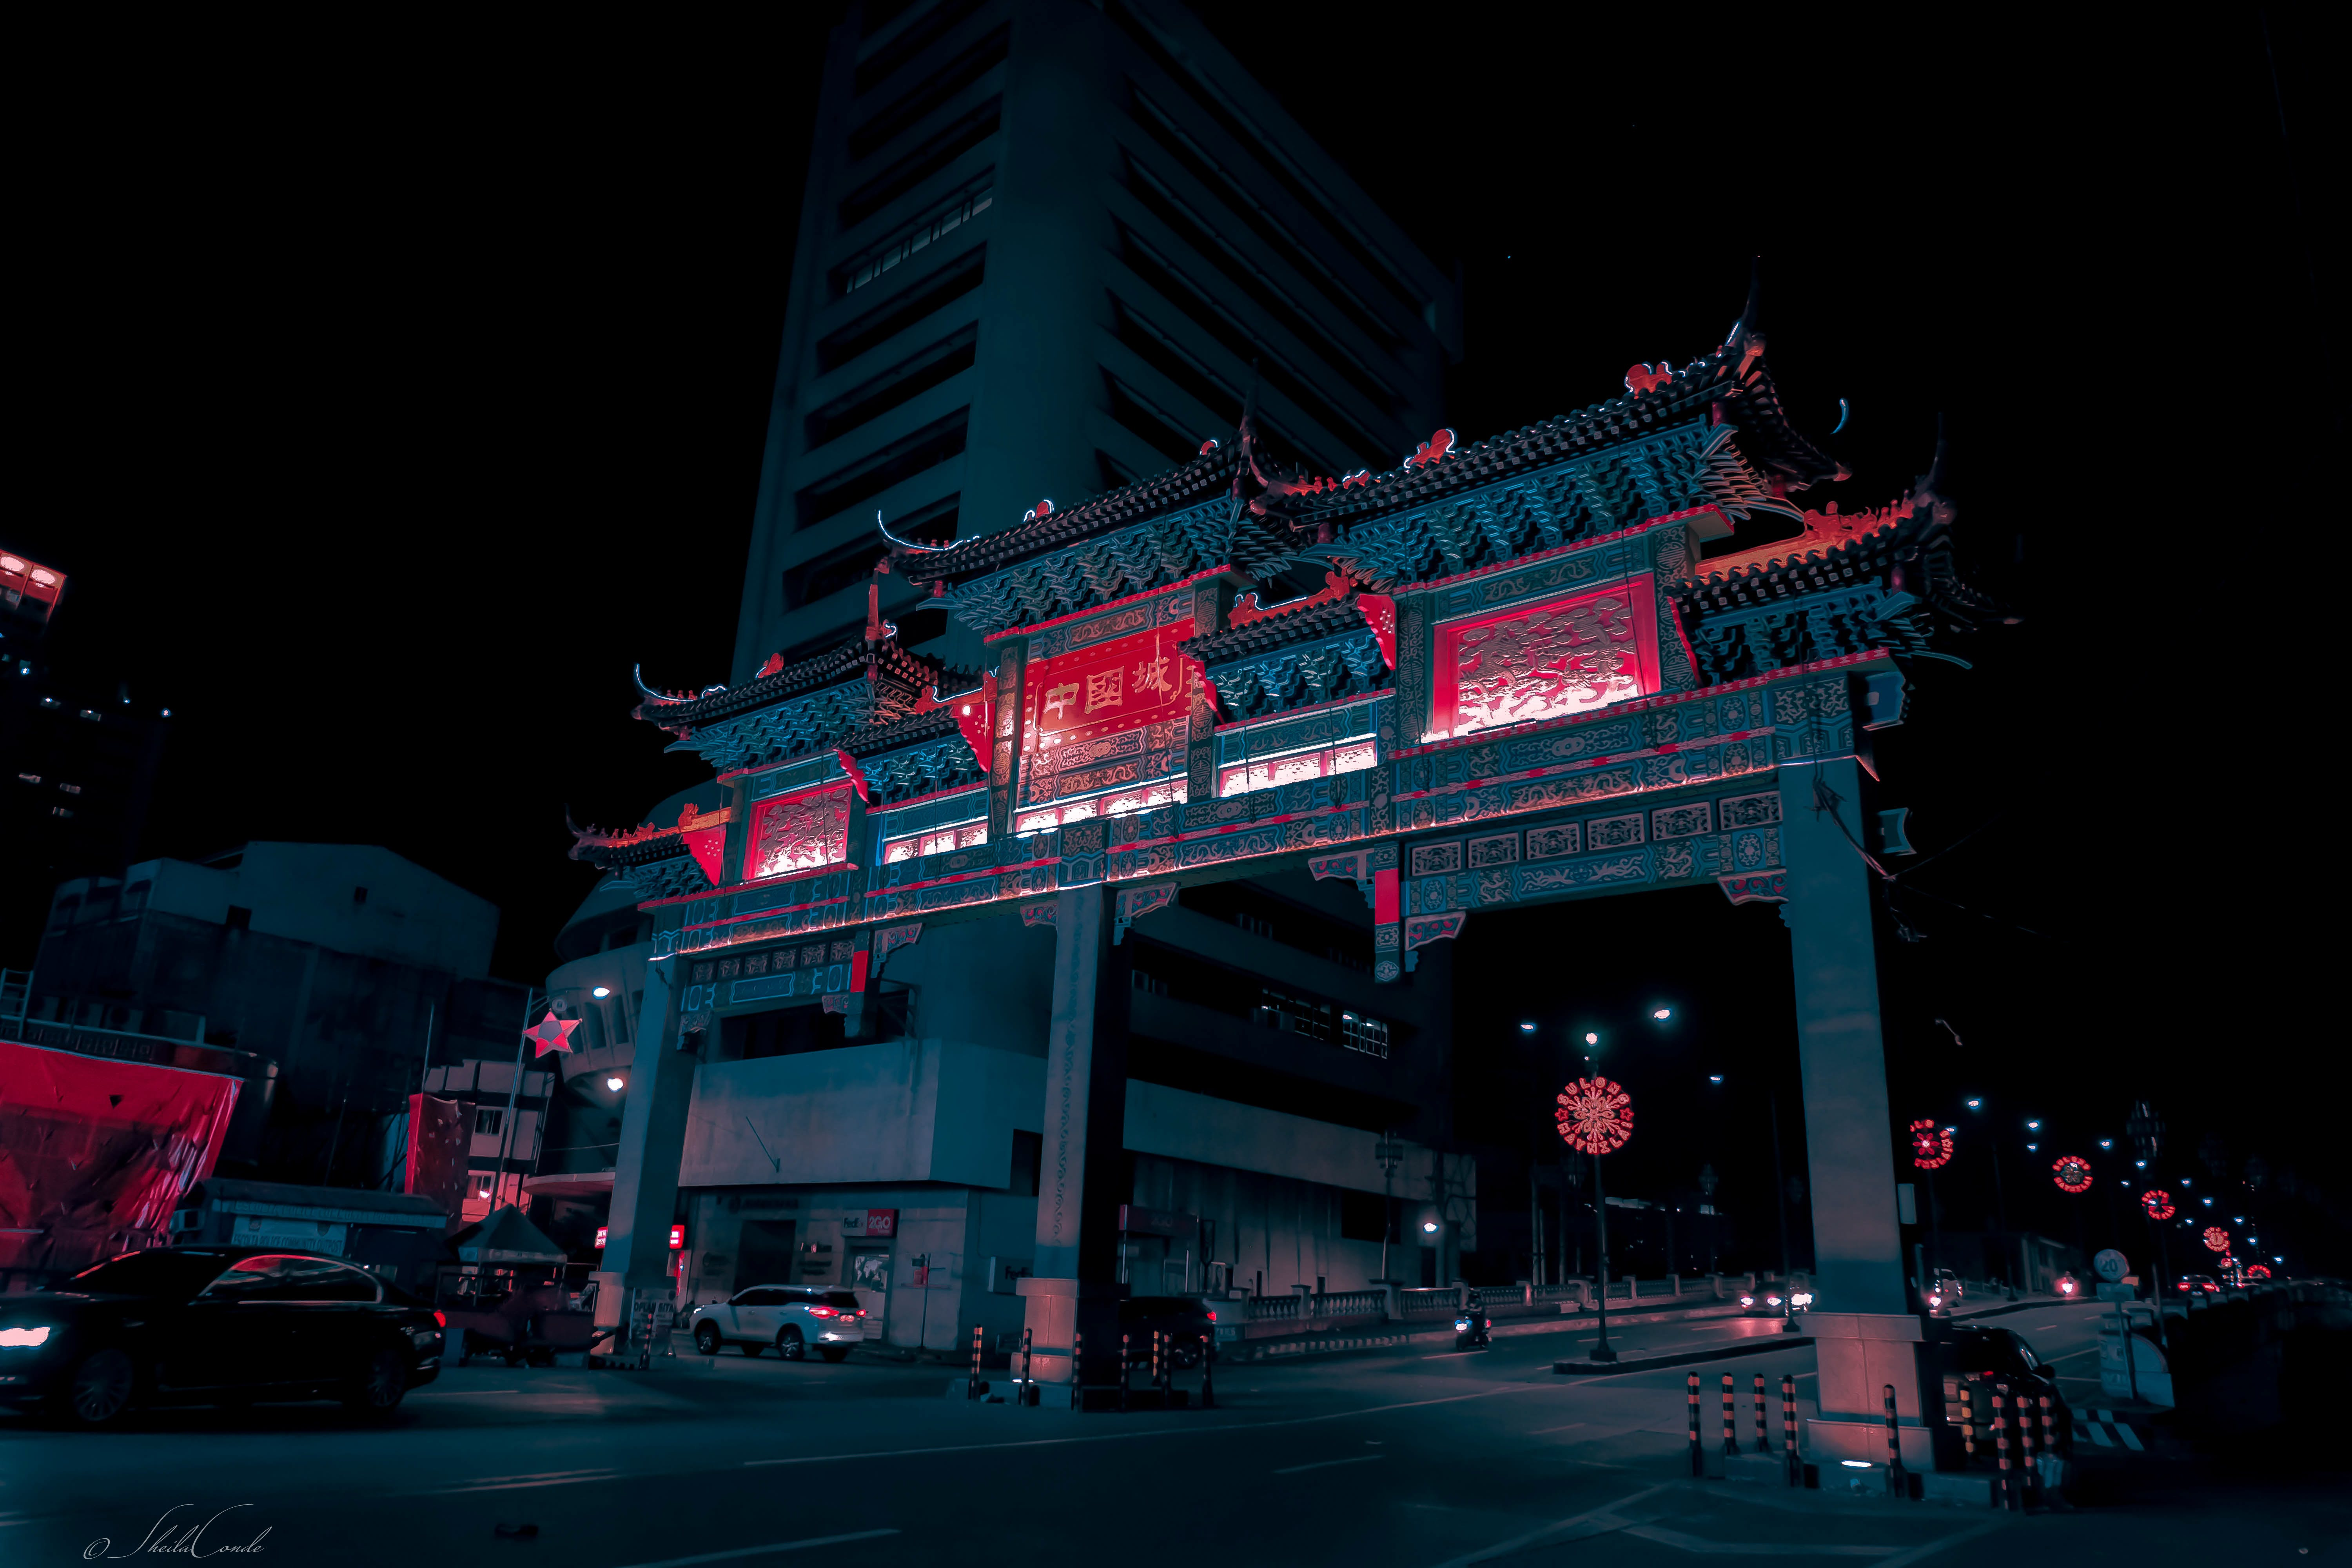 Free stock photo of architectural design, bridge, chinese architecture, city lights